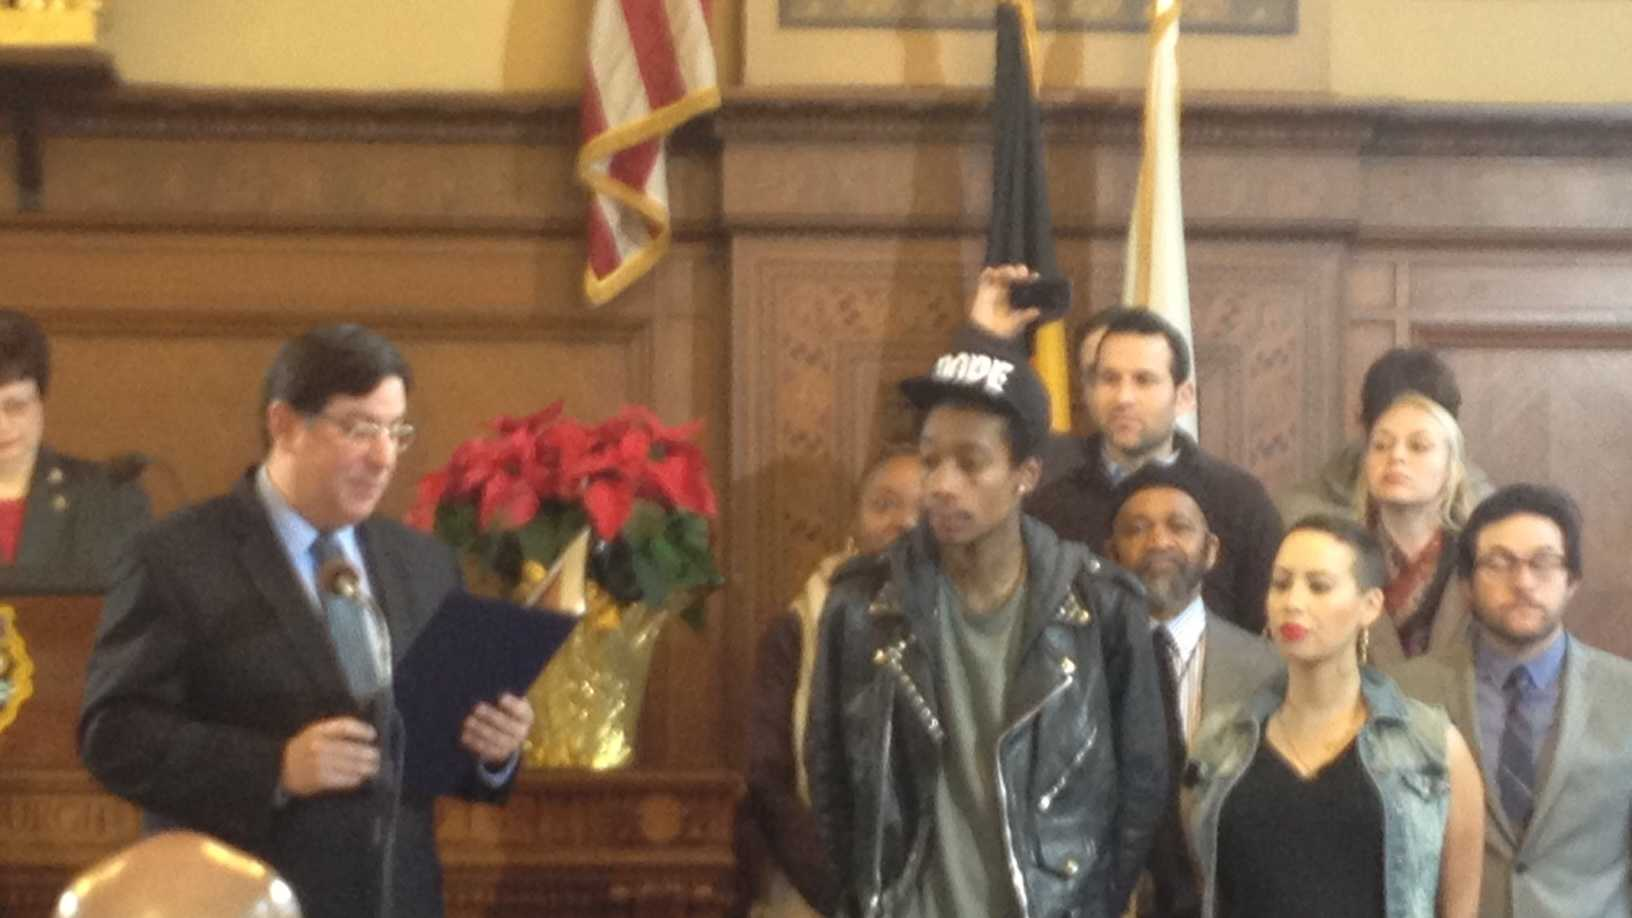 Wiz Khalifa in Pittsburgh City Council chambers